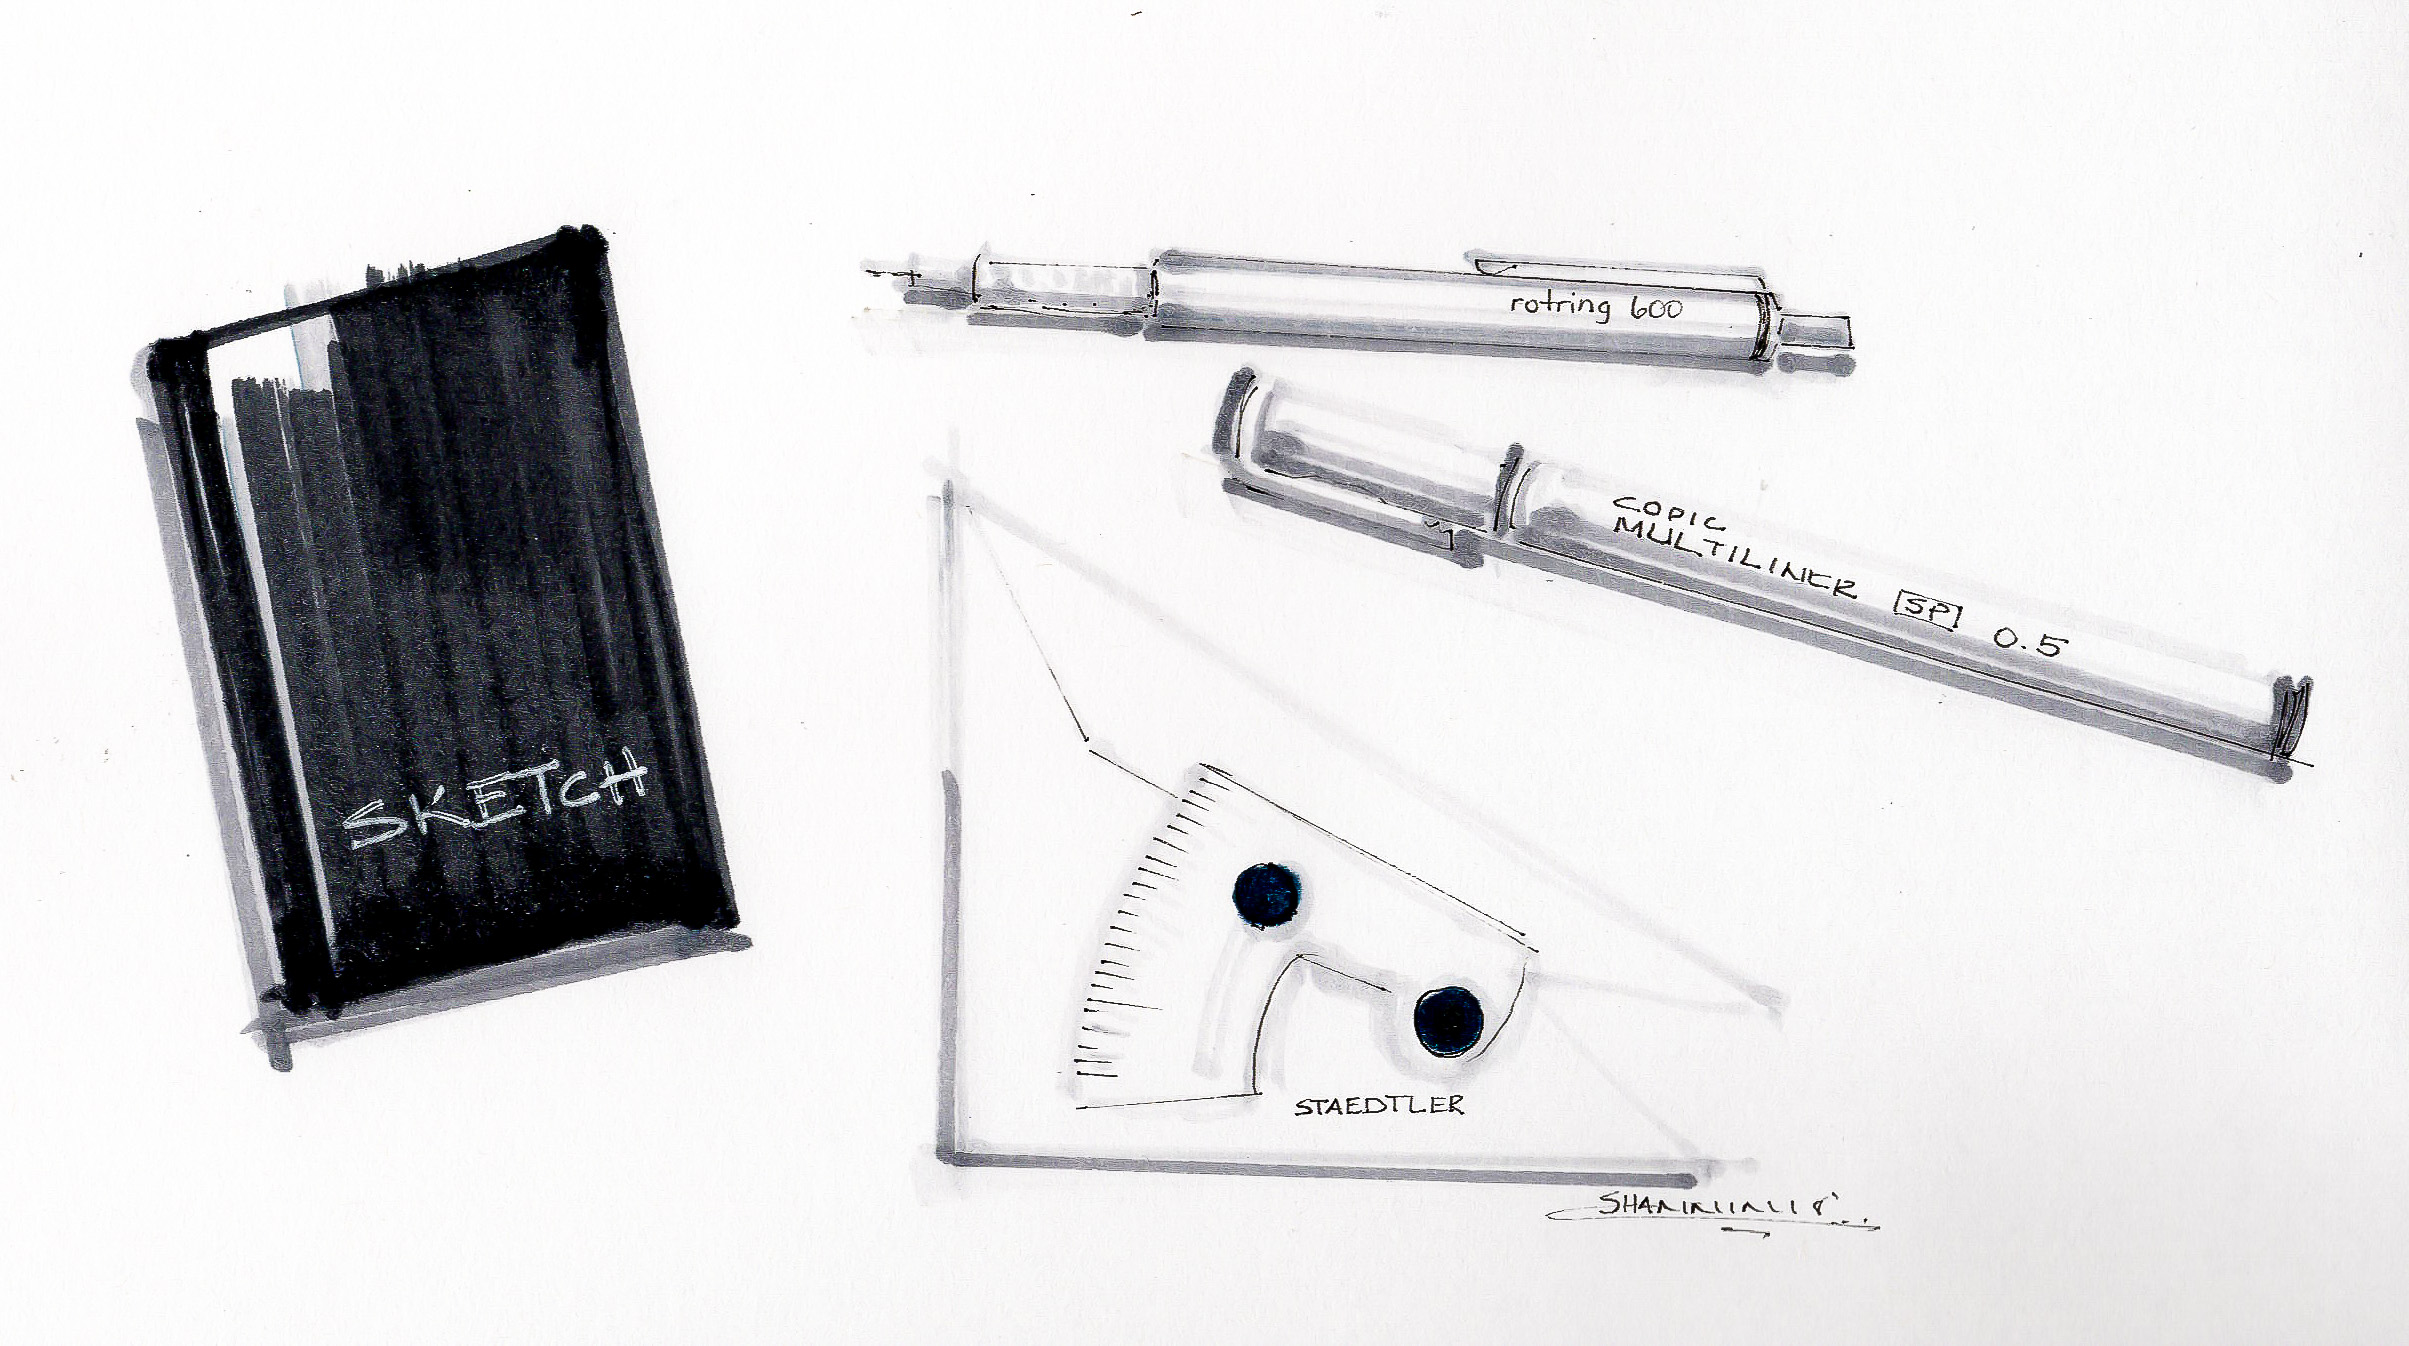 Sketches of architectural and design rendering tools